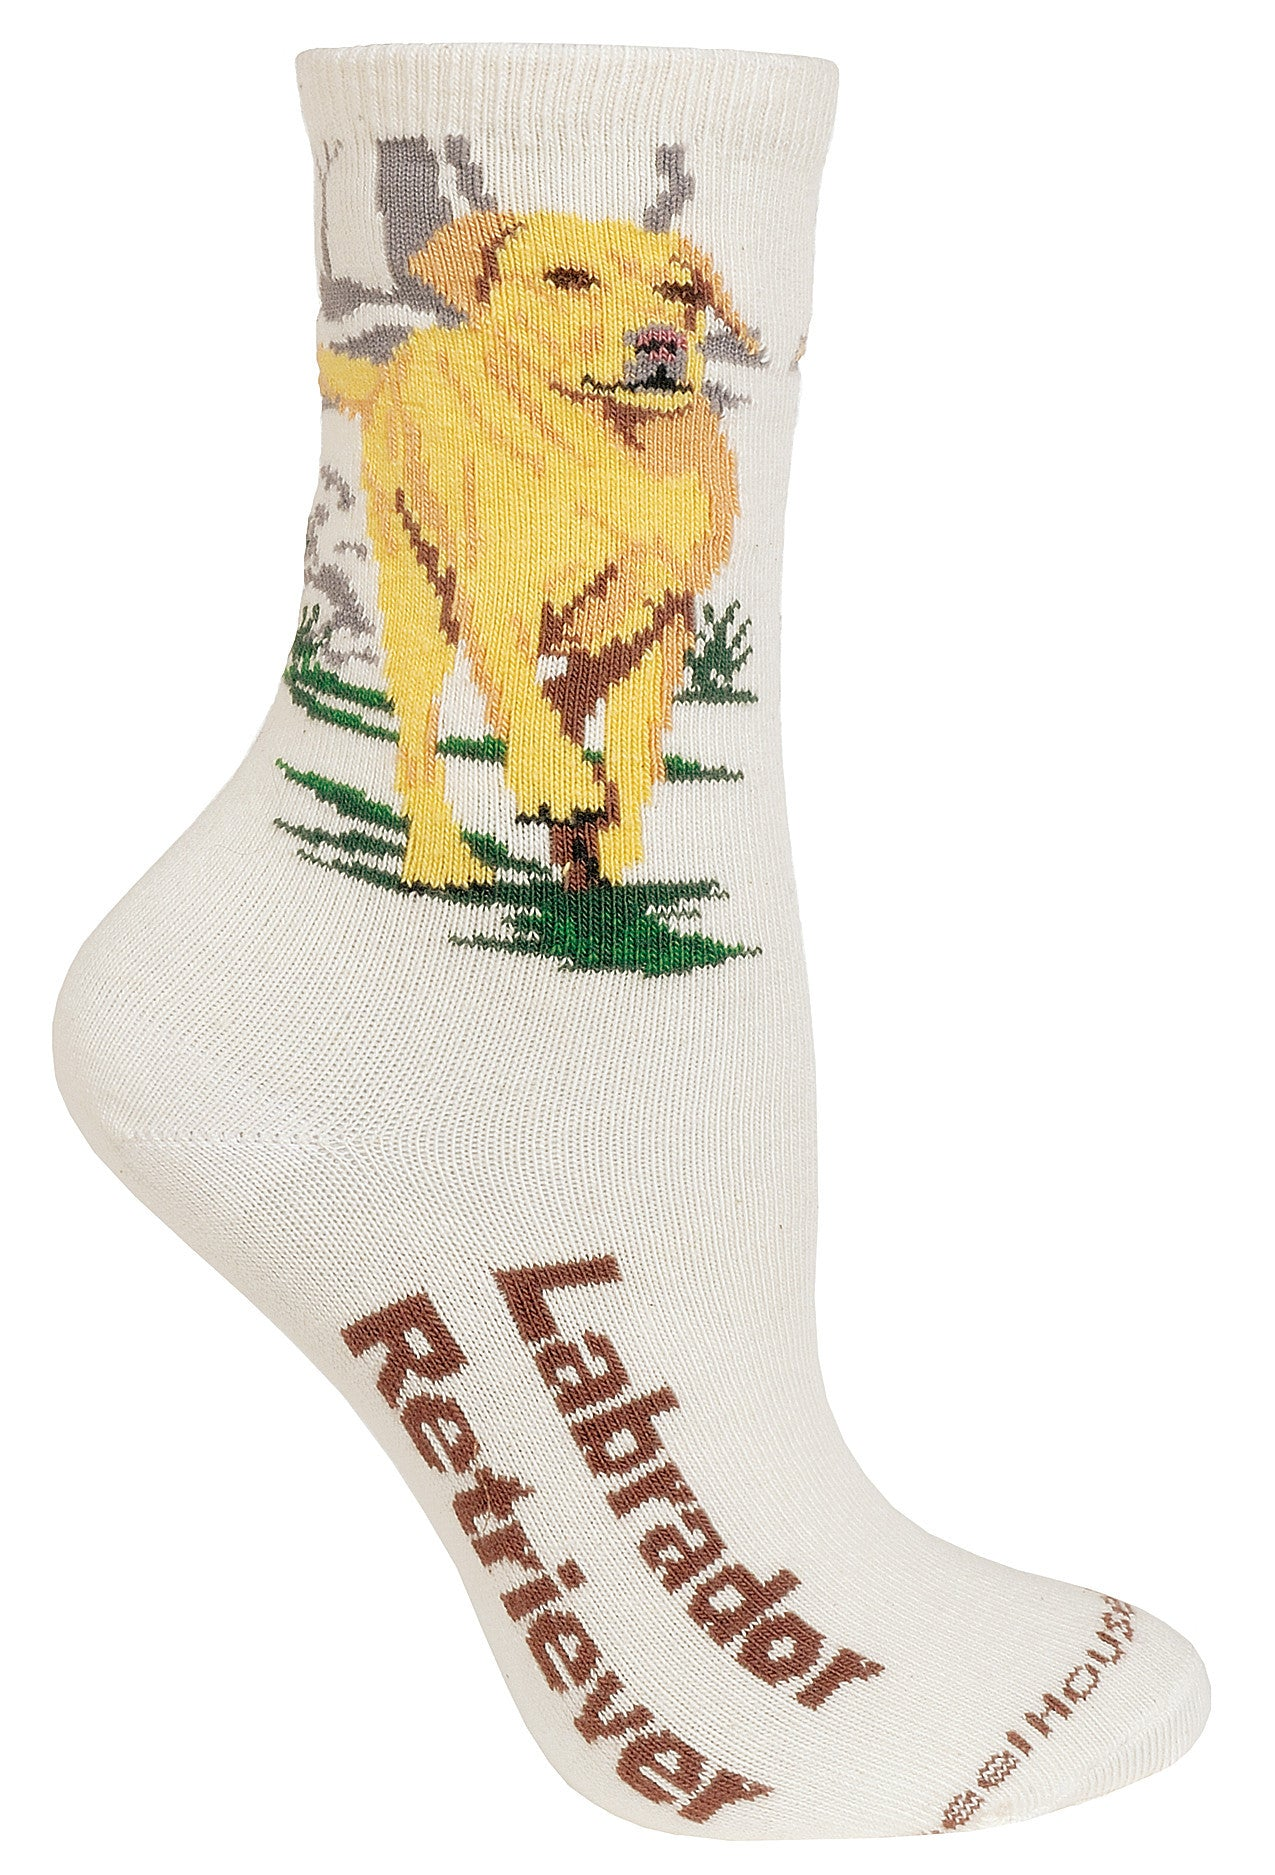 Yellow Labrador Retriever on Natural Crew Socks